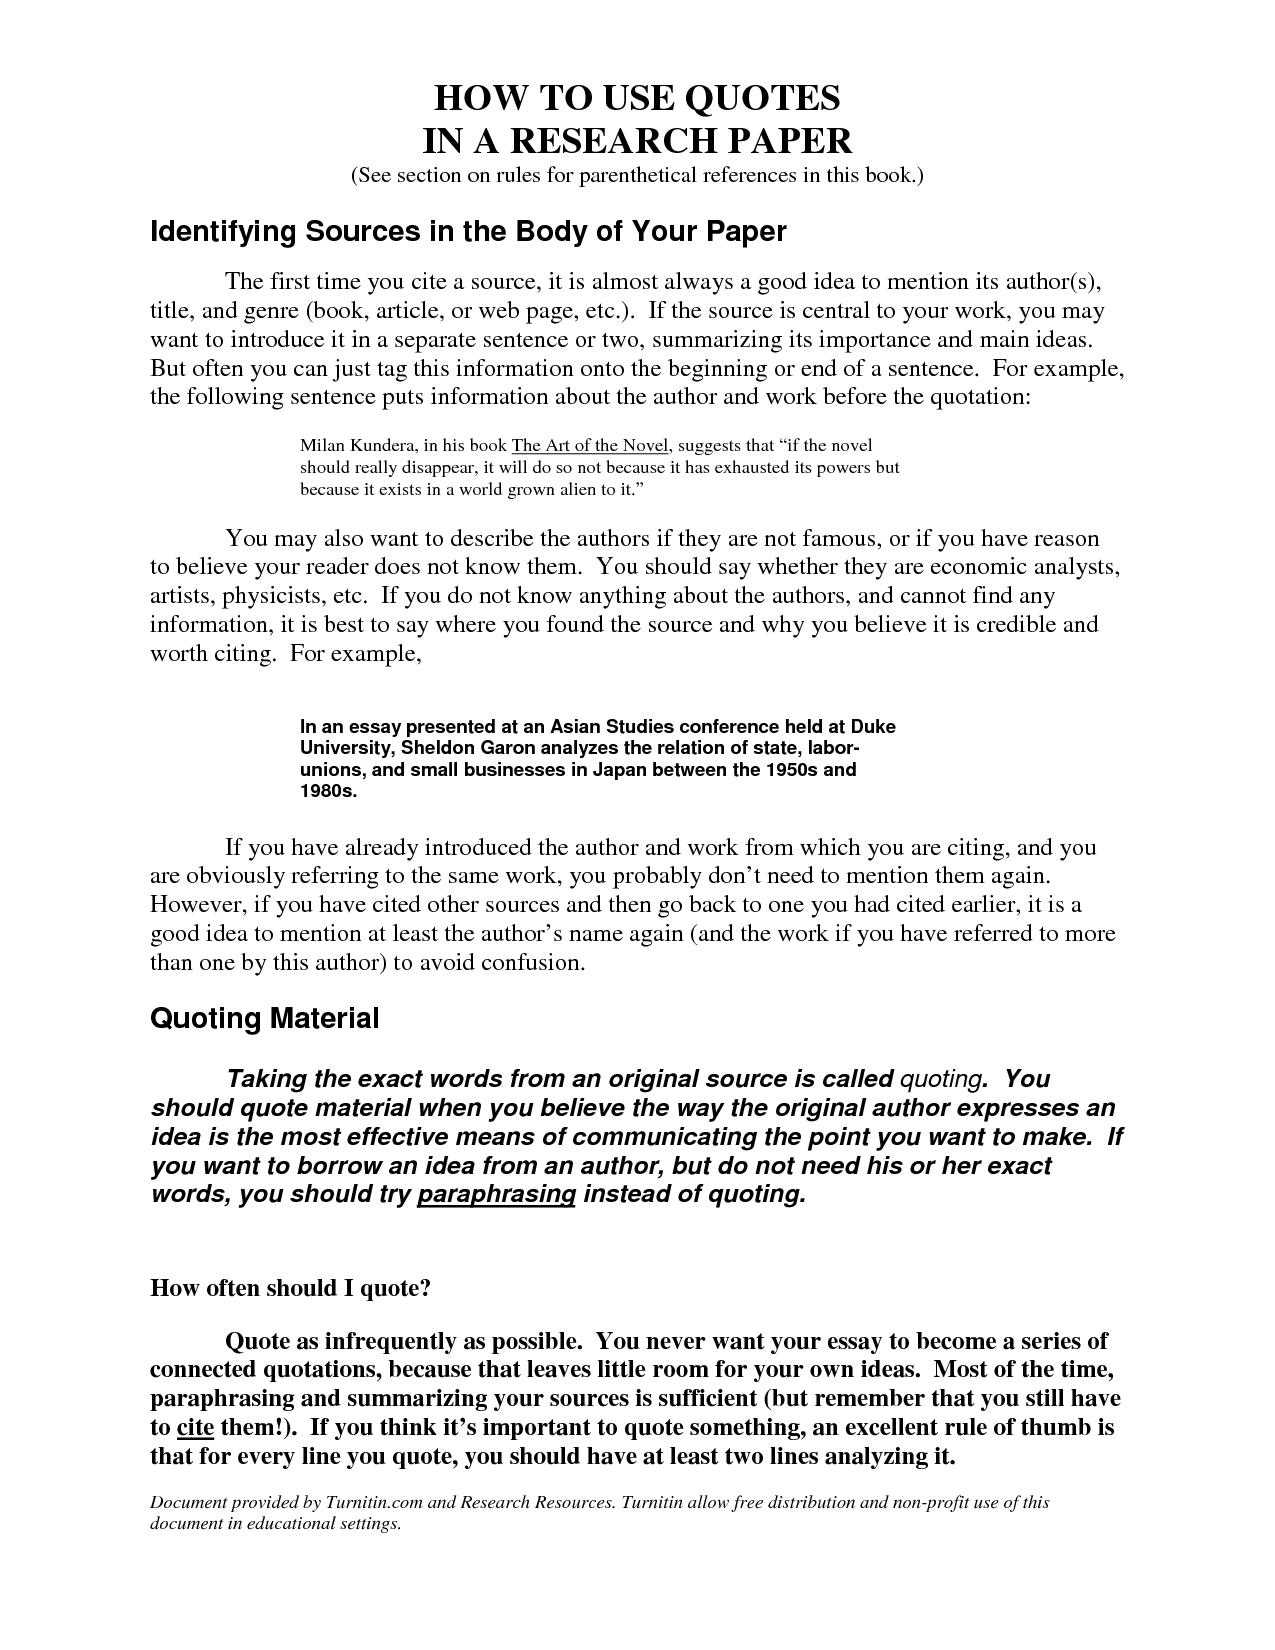 003 Essay Example Best Solutions Of Writing Quotes In Essays Marvelous Embedding On Quotestopics How To Put Remarkable An A Quote Apa Format Full